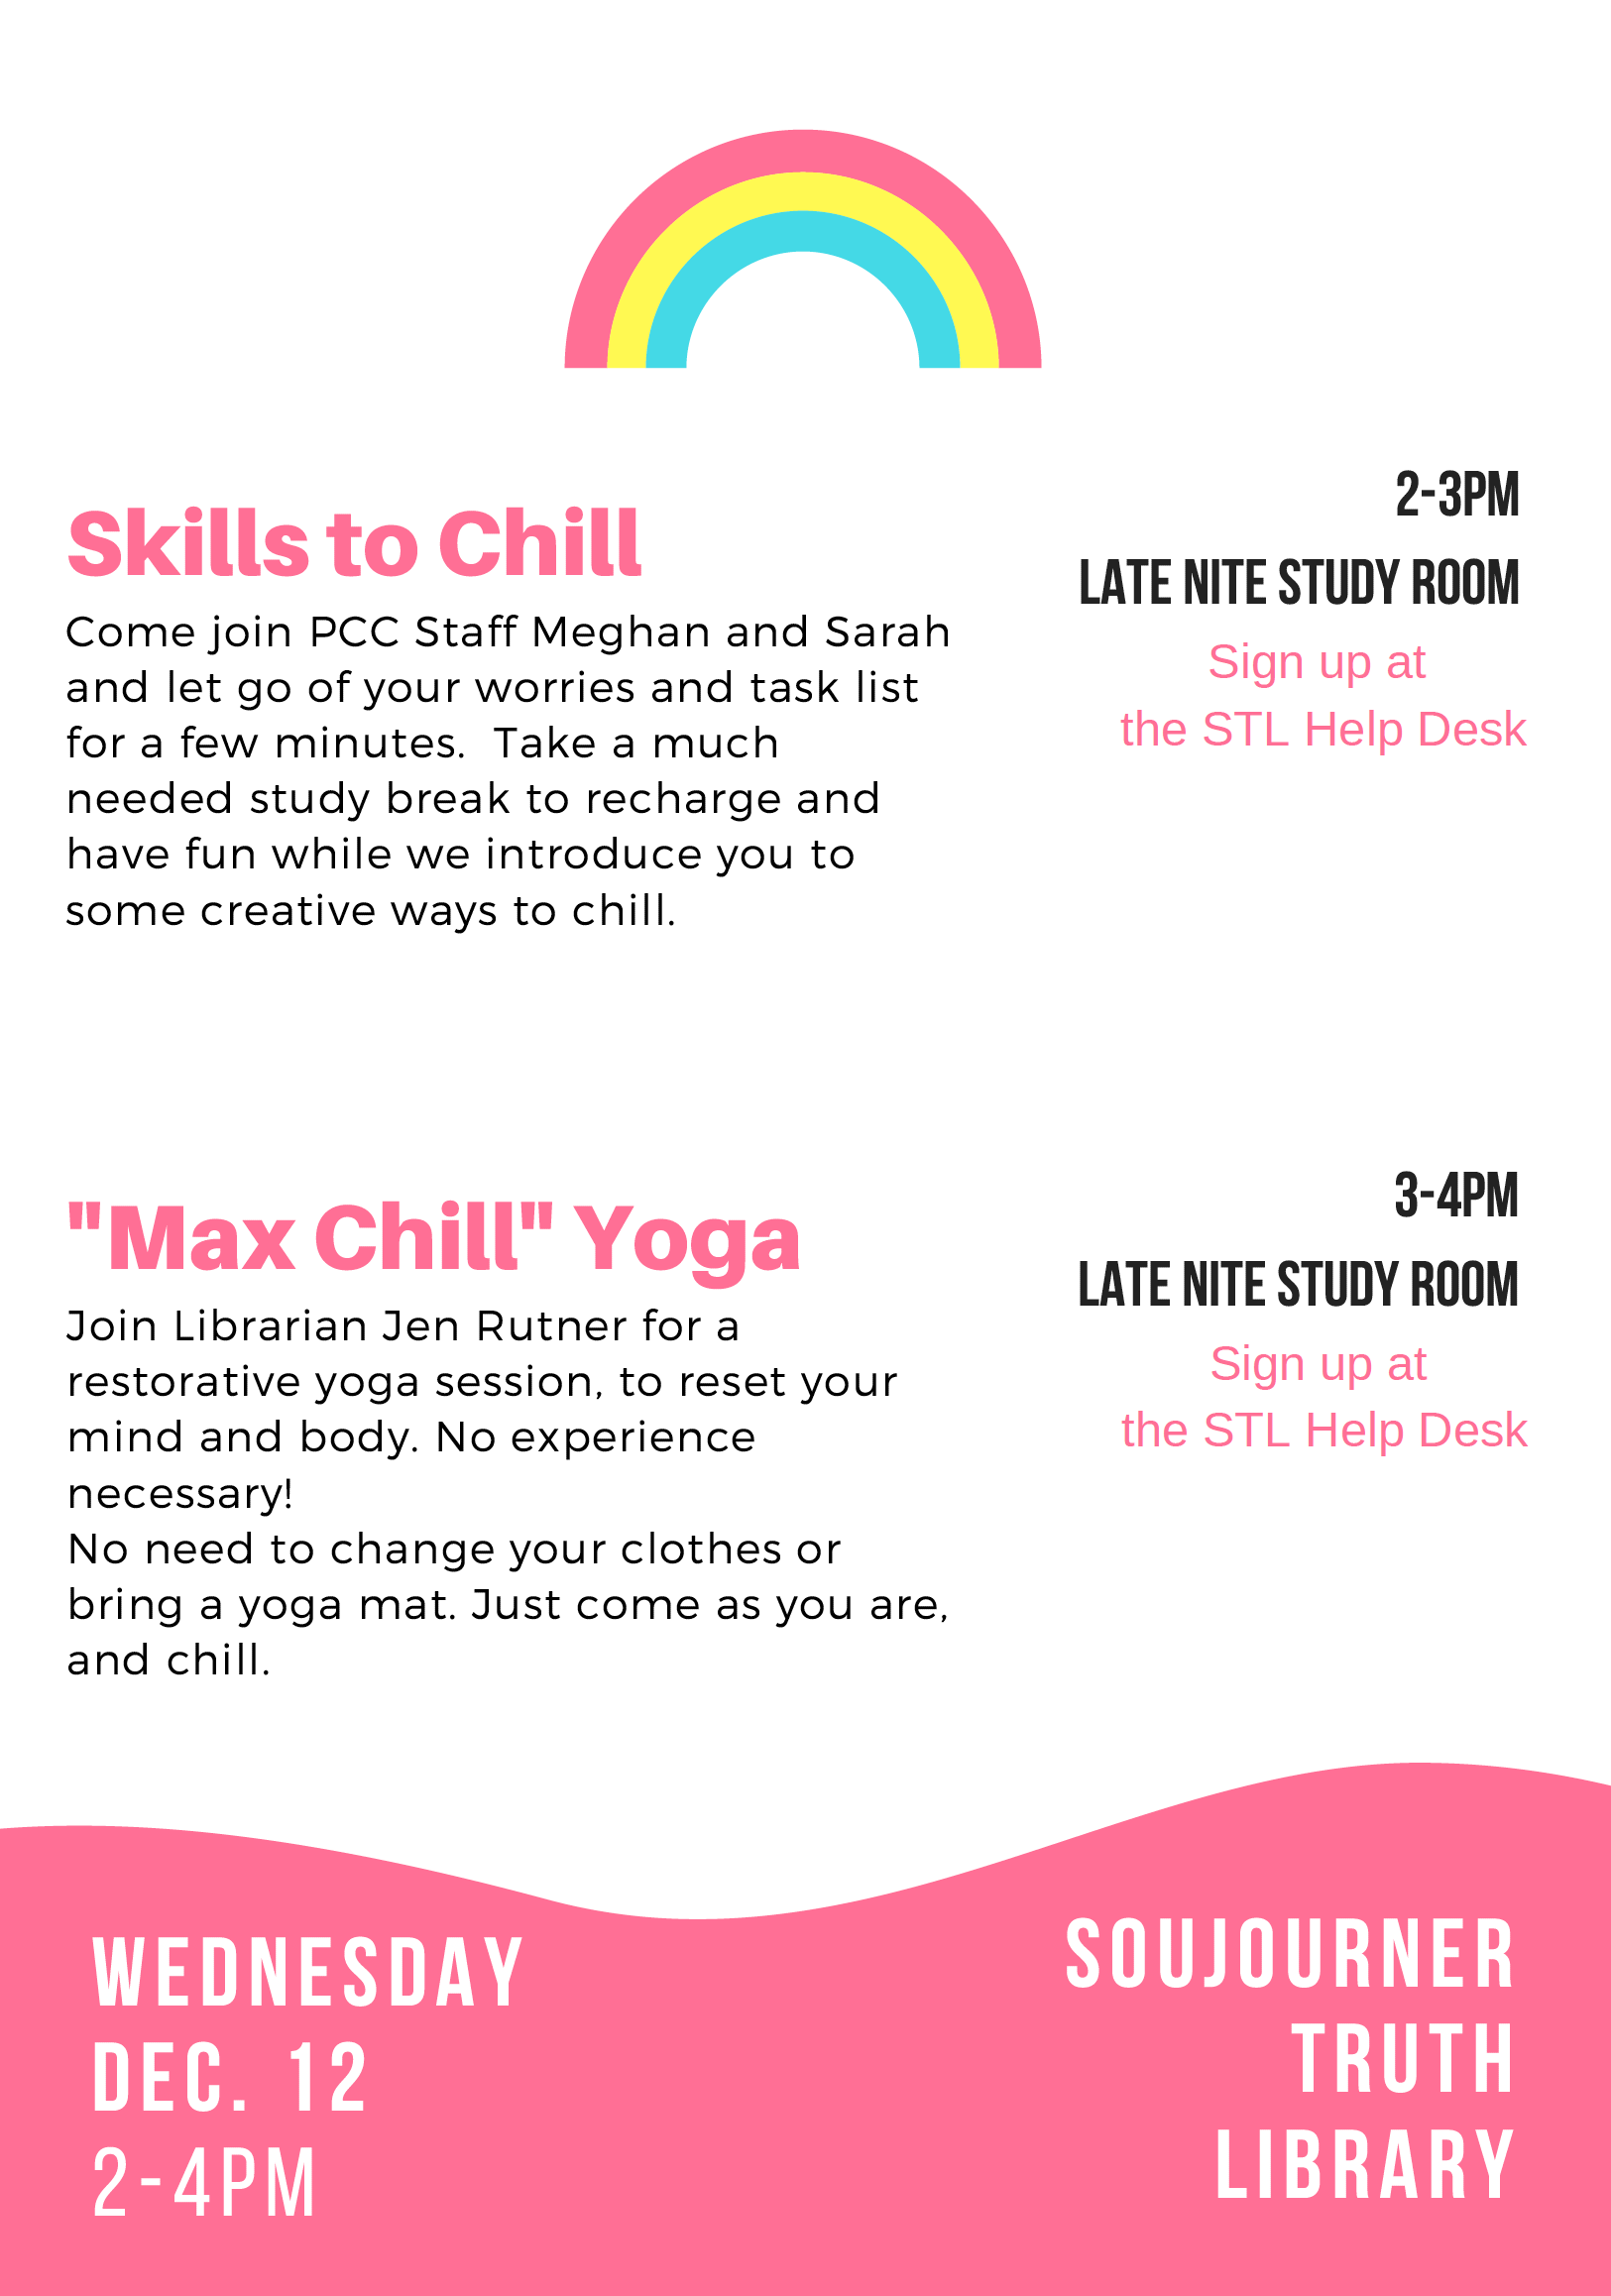 """Skills to Chill - 2-3pm Late Nite Study Room Sign up at the STL Help Desk  Come join PCC Staff Meghan and Sarah and let go of your worries and task list for a few minutes. Take a much needed study break to recharge and have fun while we introduce you to some creative ways to chill. """"Max Chill"""" Yoga - 3-4pm Late Nite Study Room Sign up at the STL Help Desk  Join Librarian Jen Rutner for a restorative yoga session, to reset your mind and body. No experience necessary! No need to change your clothes or bring a yoga mat. Just come as you are, and chill."""